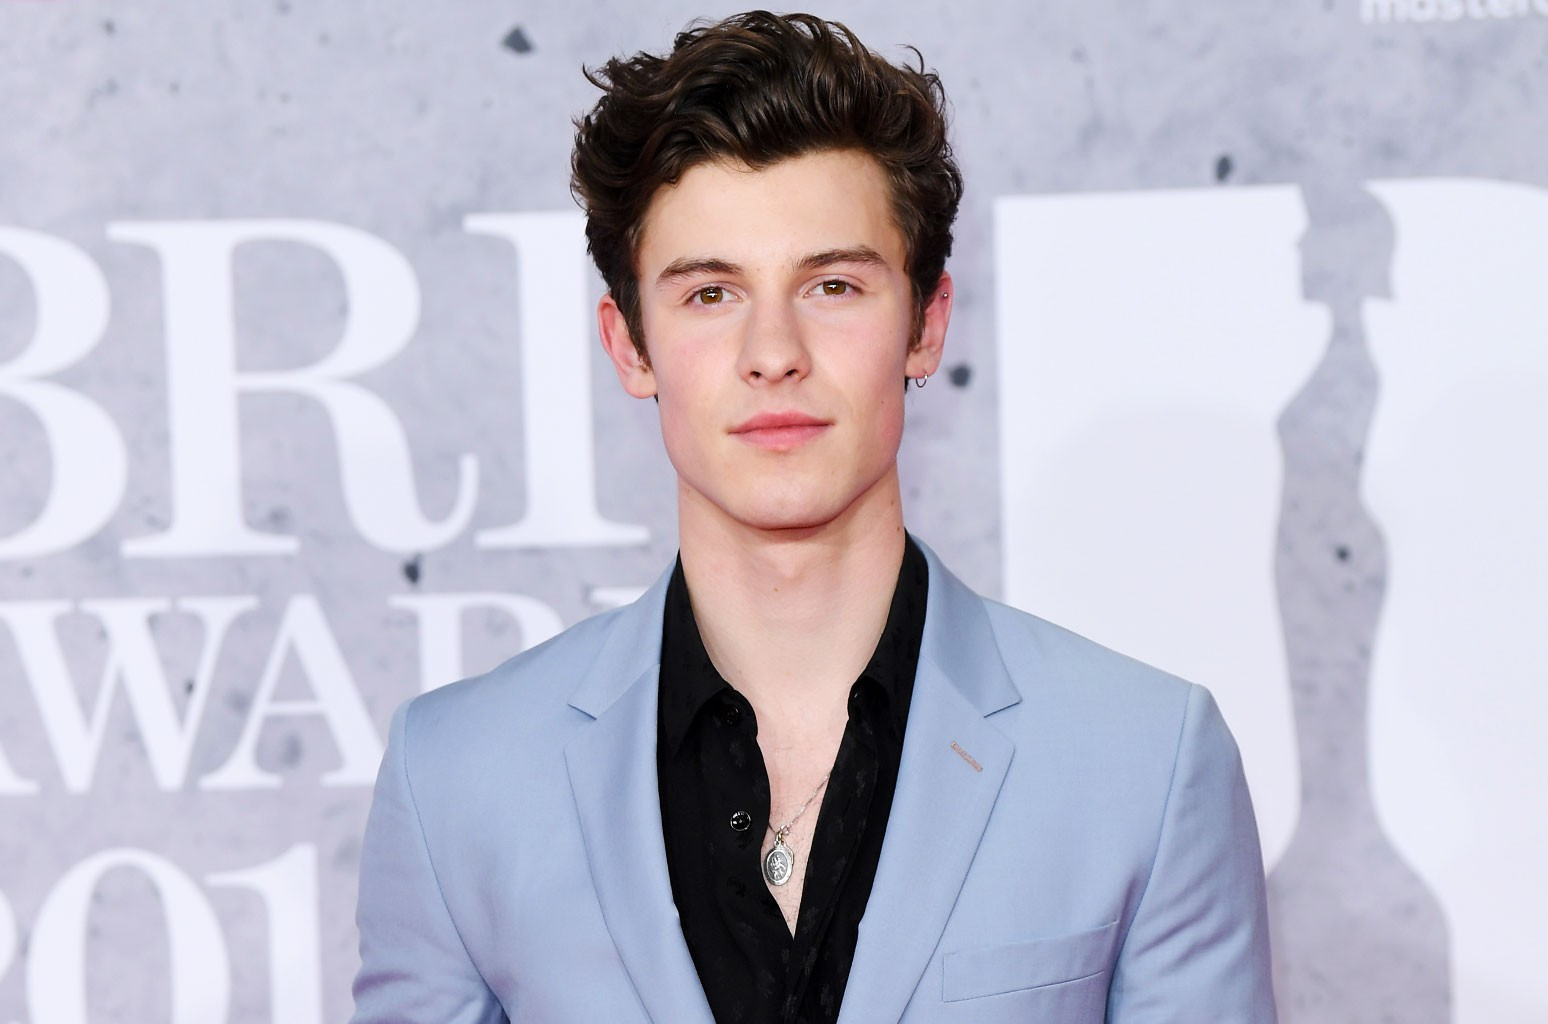 Shawn Mendes Addresses Rumors About His Sexuality In New Interview It S Hurtful Billboard